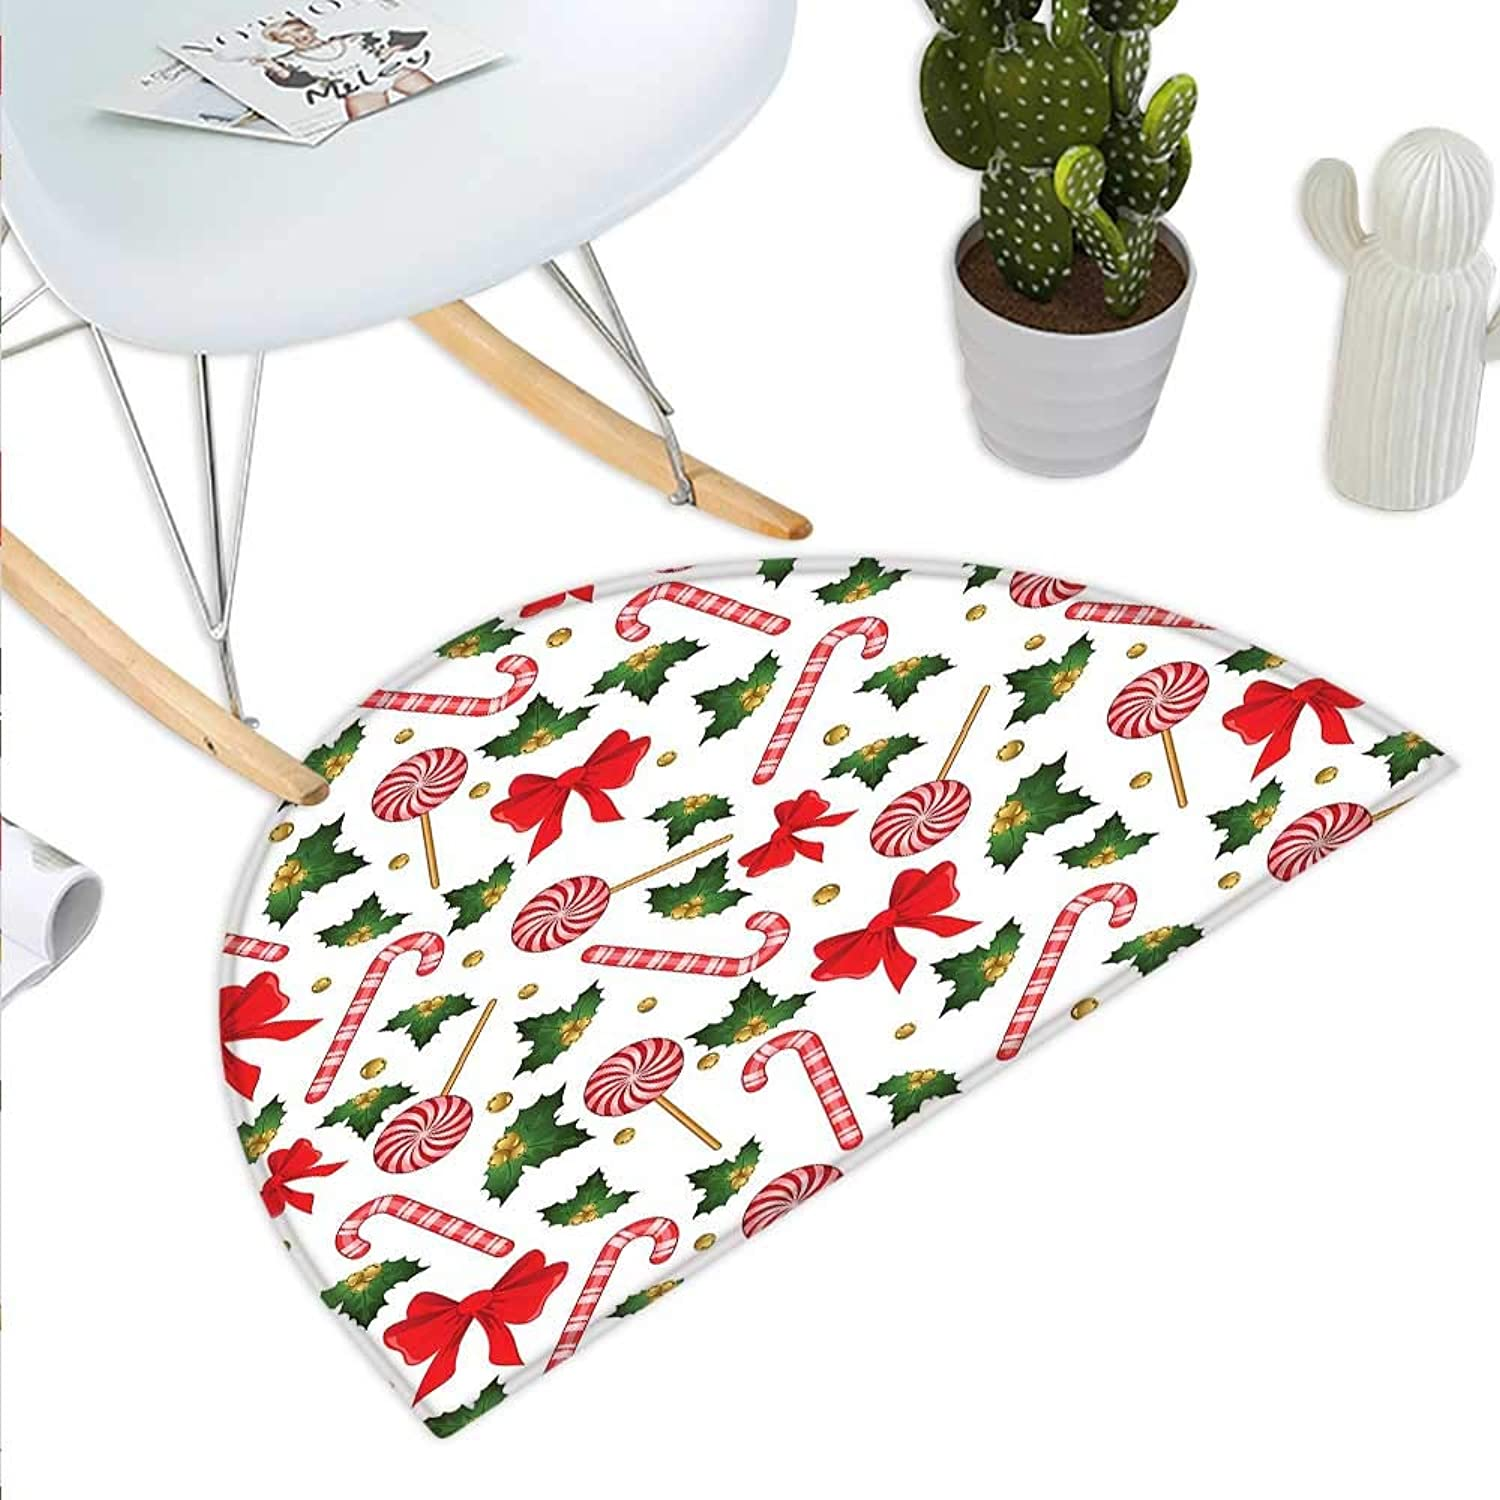 Candy Cane Semicircle Doormat Holly Berry Mistletoe Traditional Red and White Patterned Sugary Food on Sticks Halfmoon doormats H 43.3  xD 64.9  Multicolor